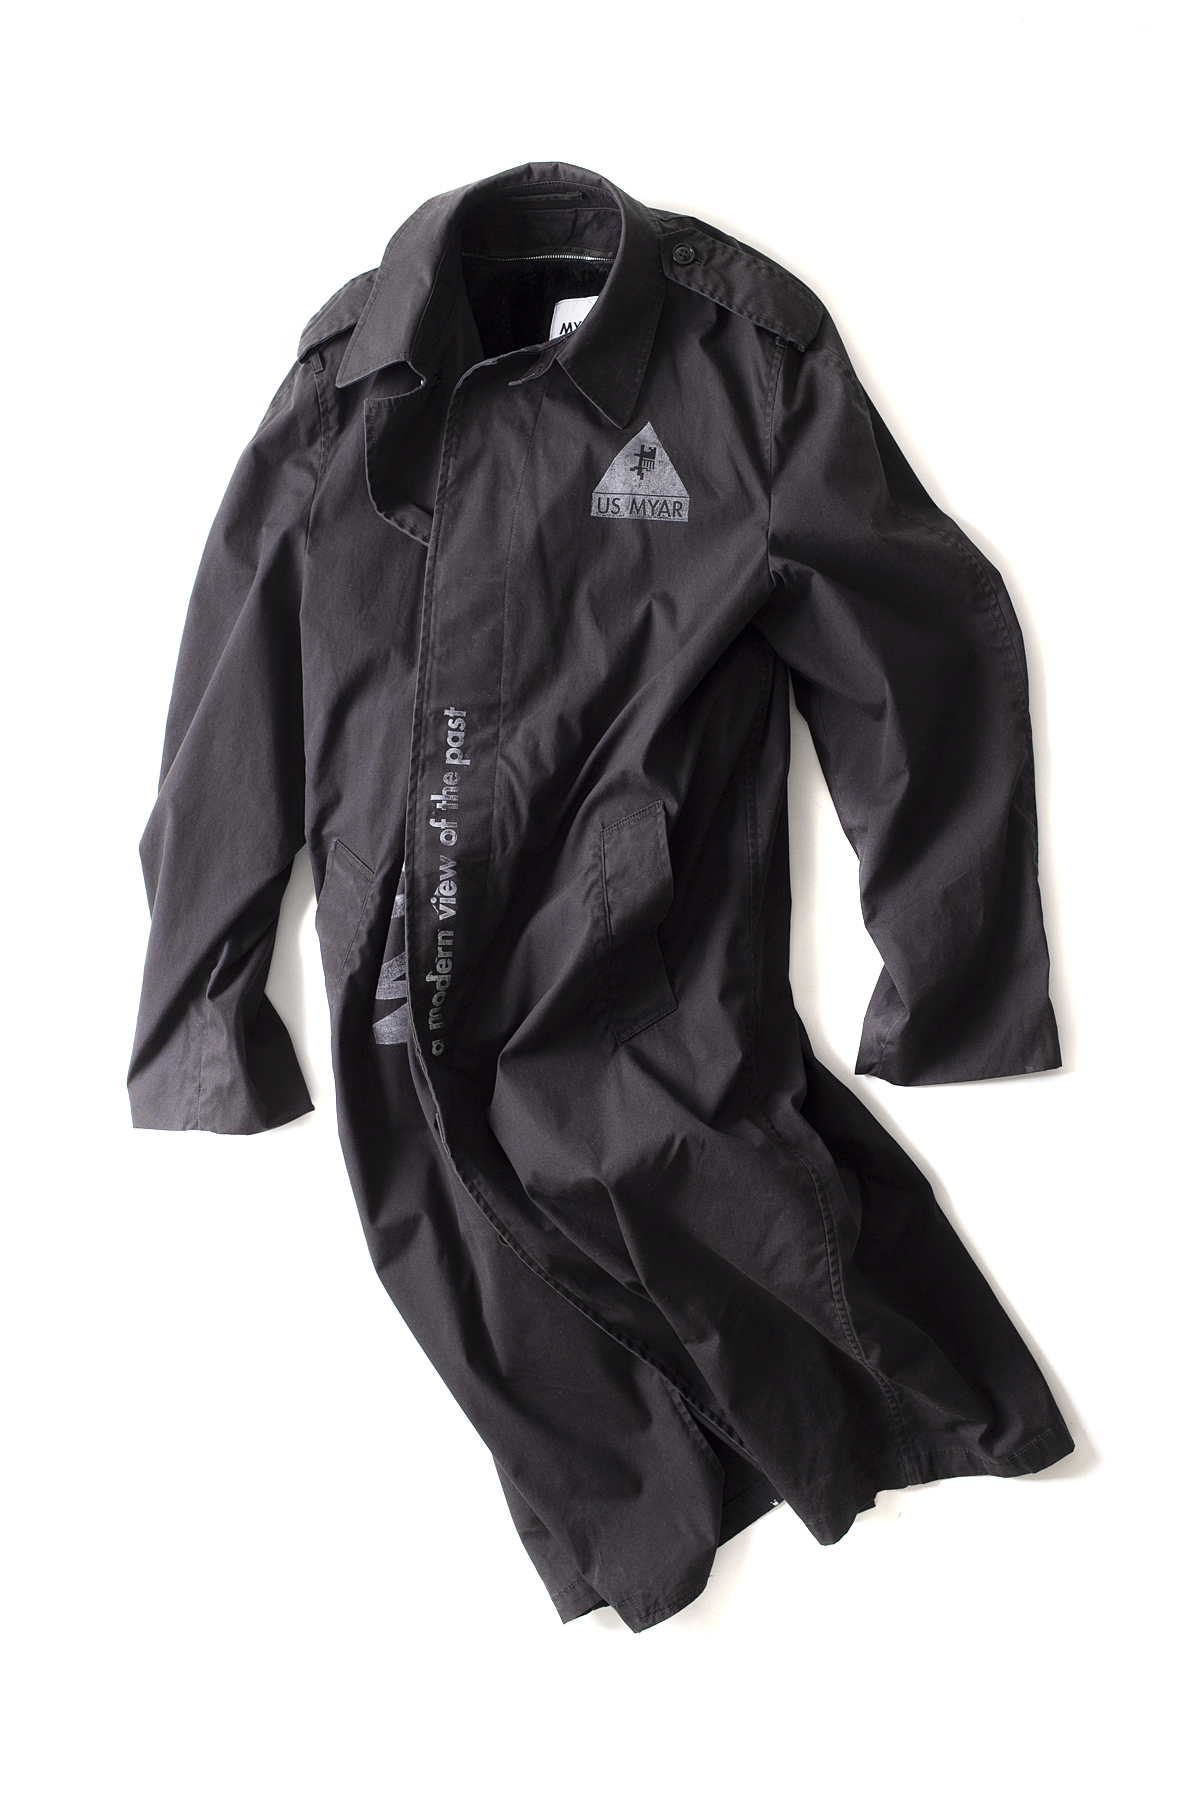 MYAR : Nylon Jacket (Black)